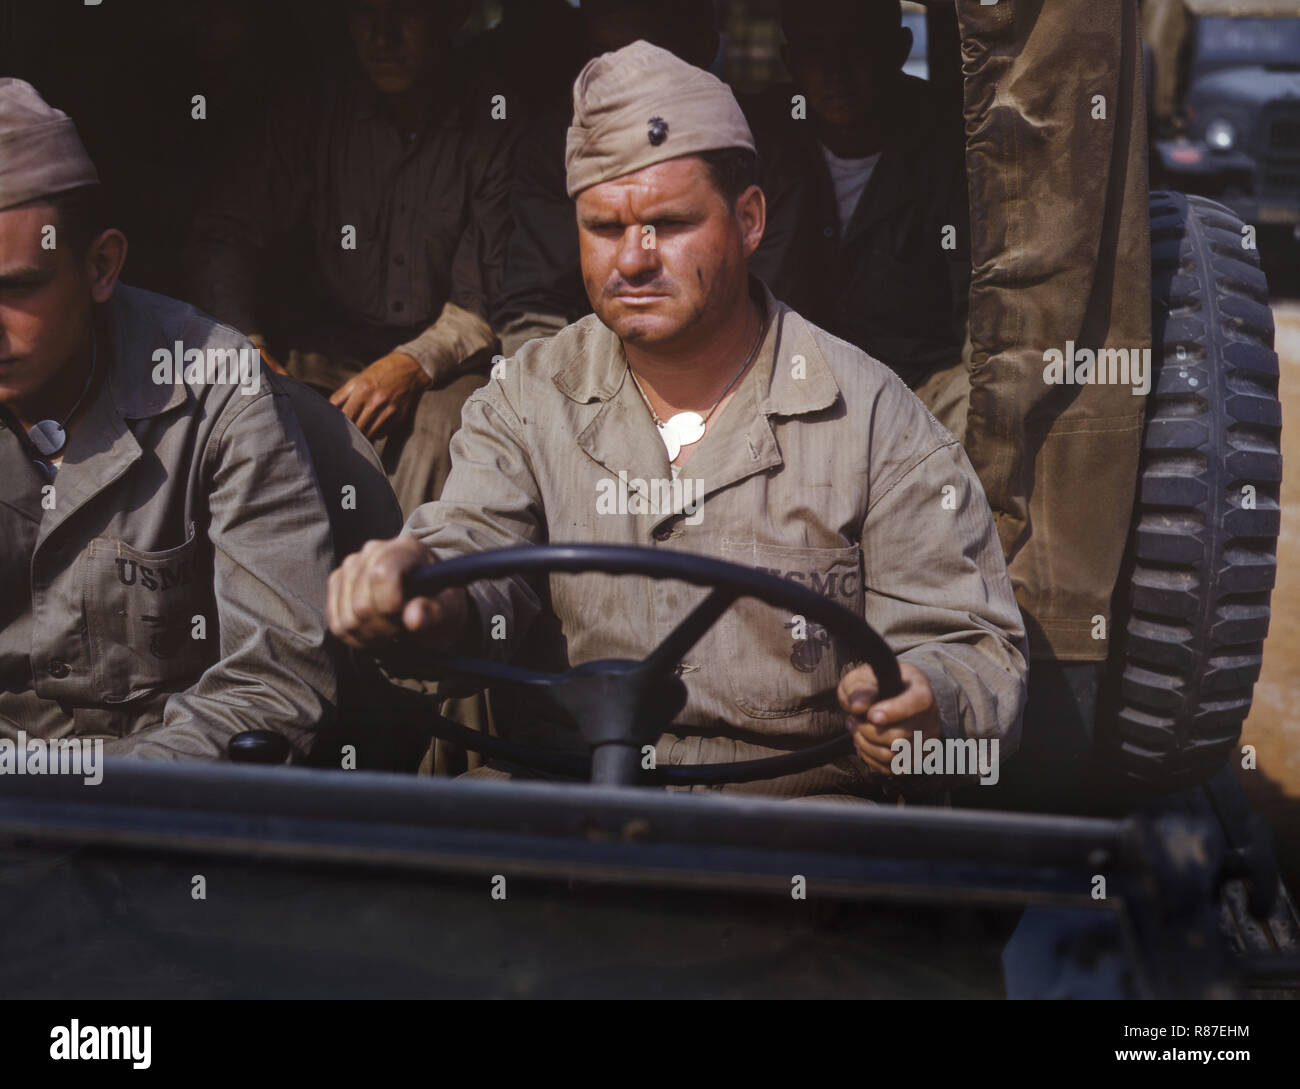 Marine Truck Driver, Marine Corps New River Air Station, Jacksonville, North Carolina, USA, Alfred T. Palmer for Office of War Information, May 1942 - Stock Image